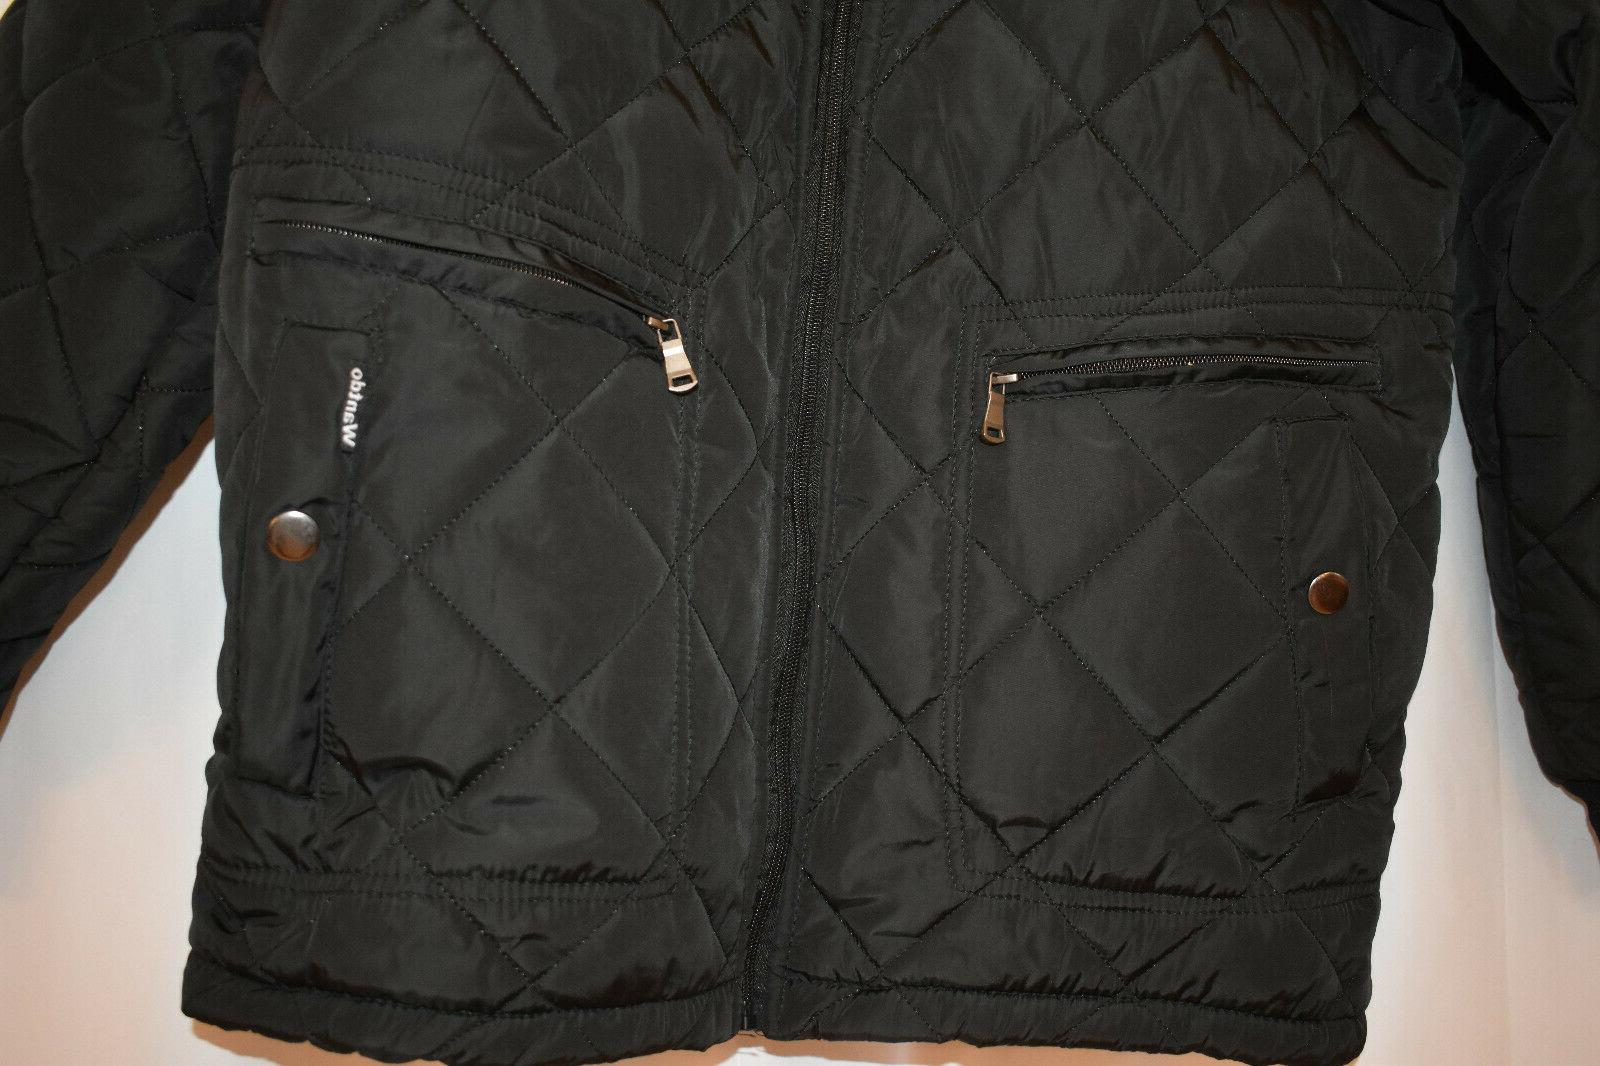 Wantdo Men's Quilted Jacket, Size M, Outdoor